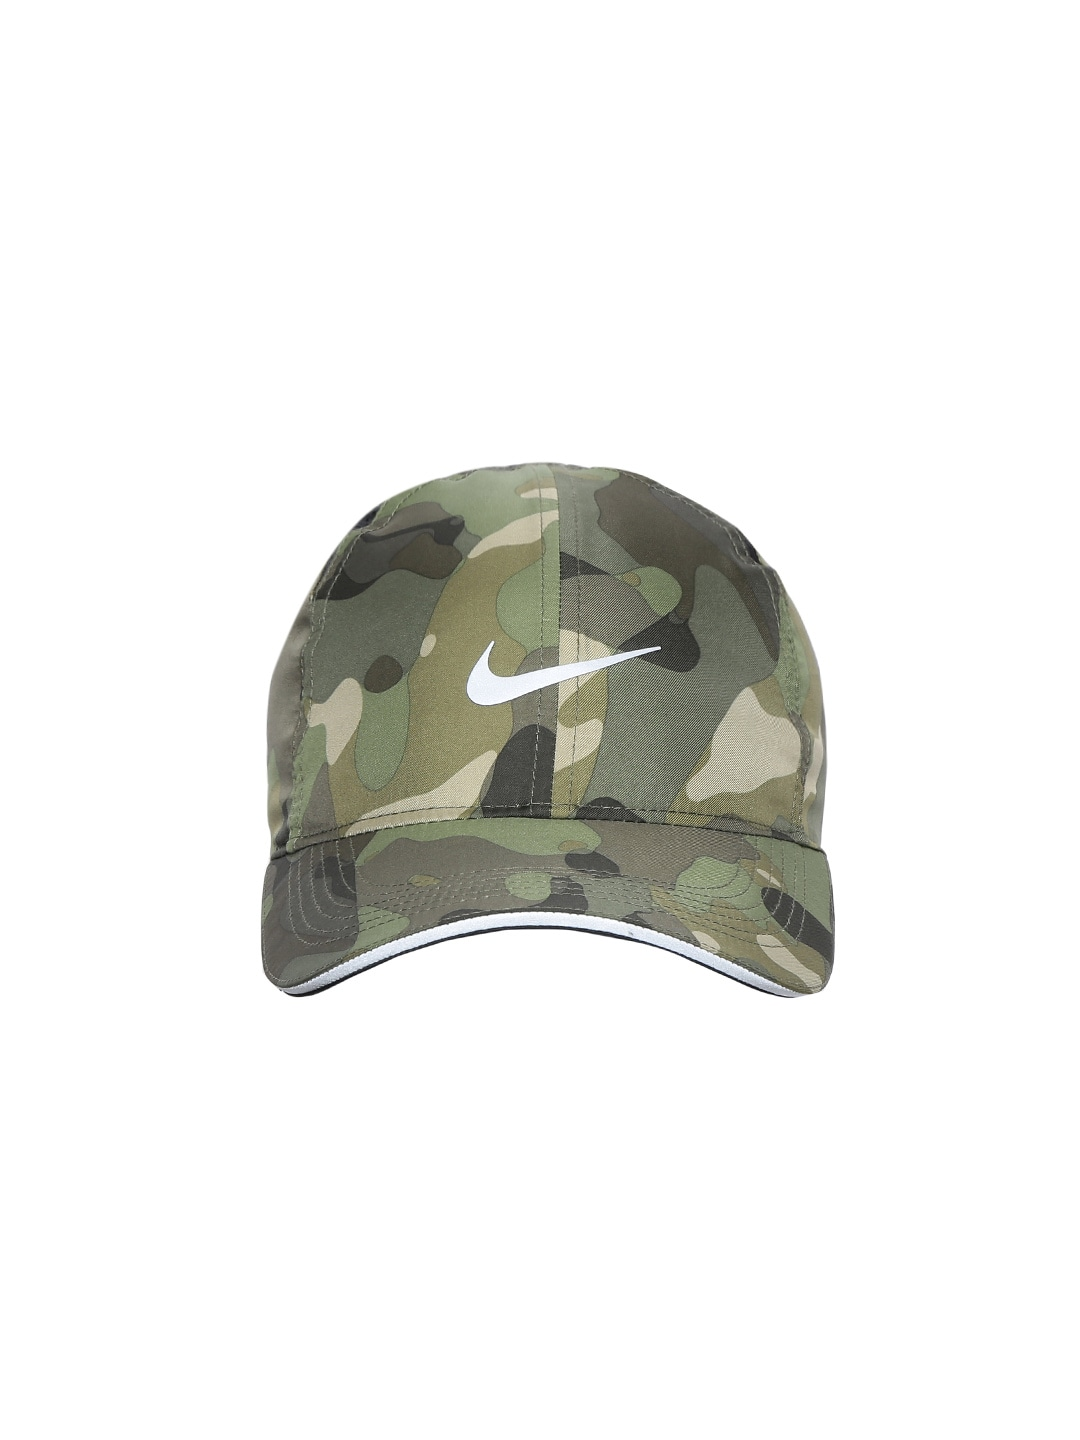 2471dcbd47fb0 Nike Unisex Olive Green DRY FEATHERLIGHT Camouflage Printed Baseball Cap